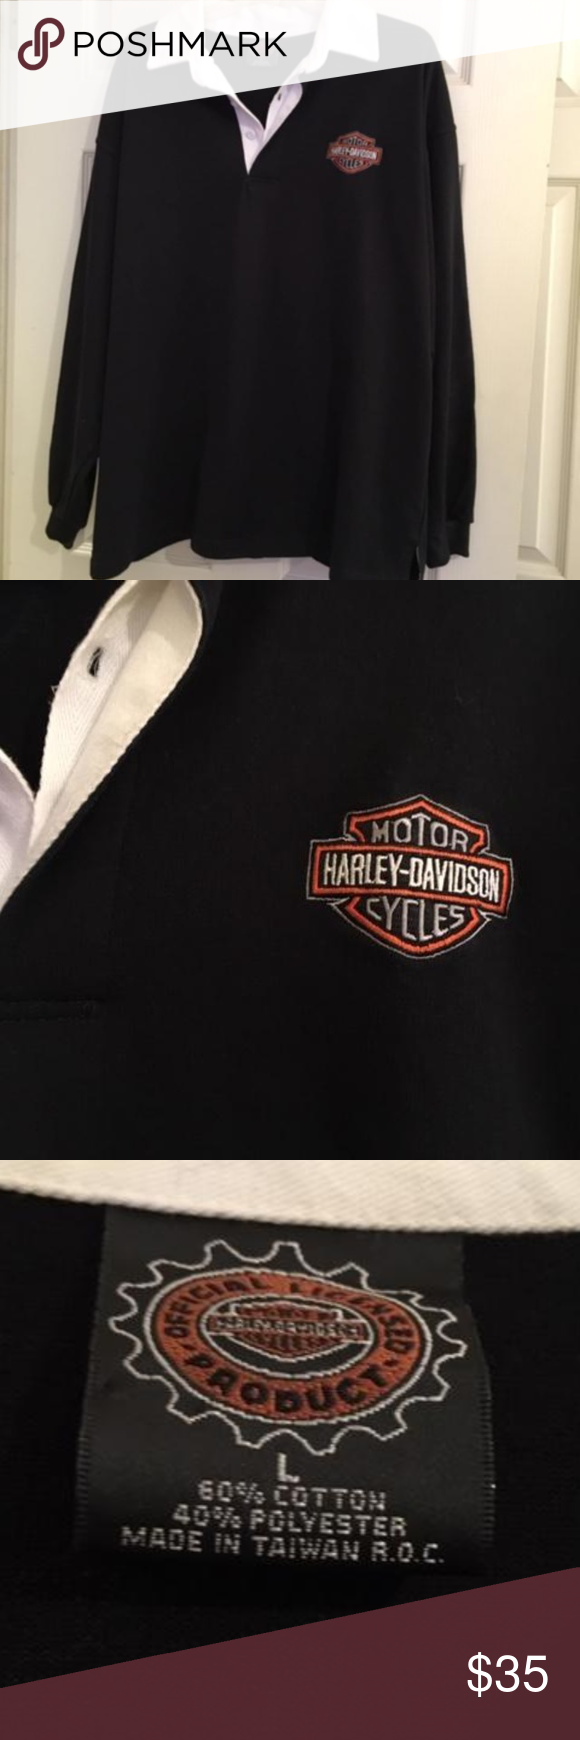 Harley Davidson Rugby Shirt Black Long Sleeved White Collar